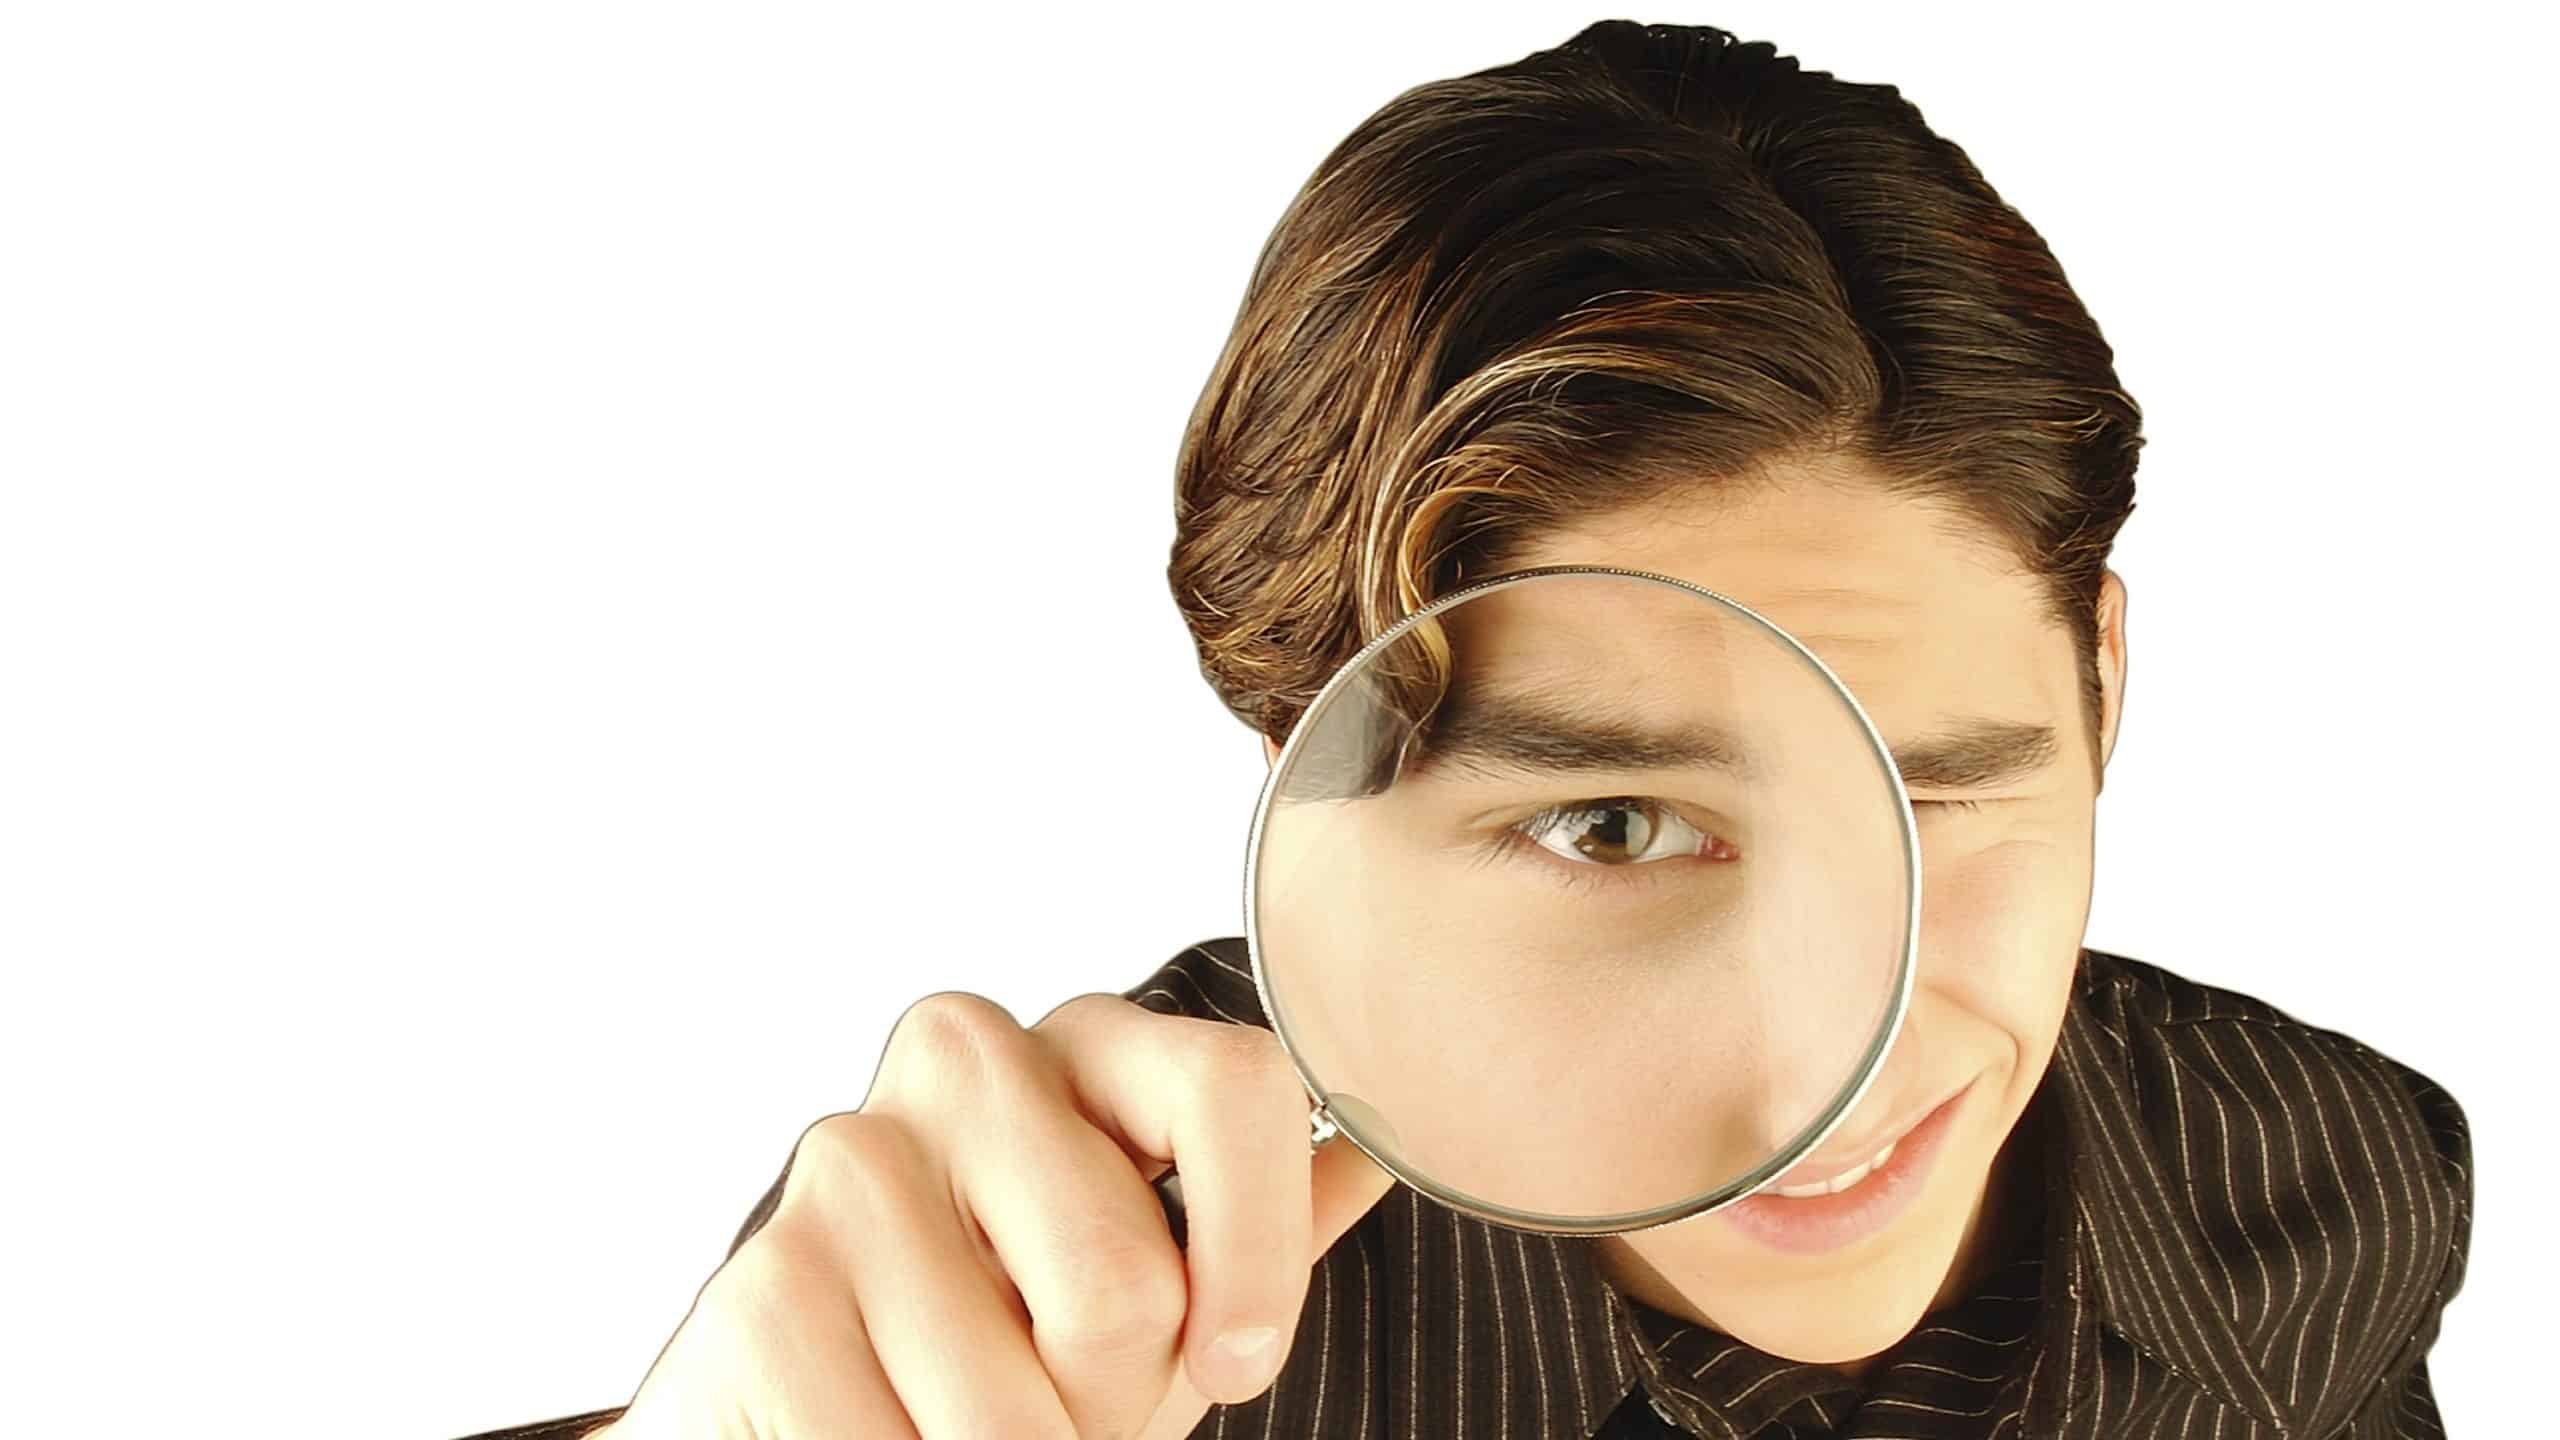 asx share price on watch represented by young man looking intently through magnifying glass